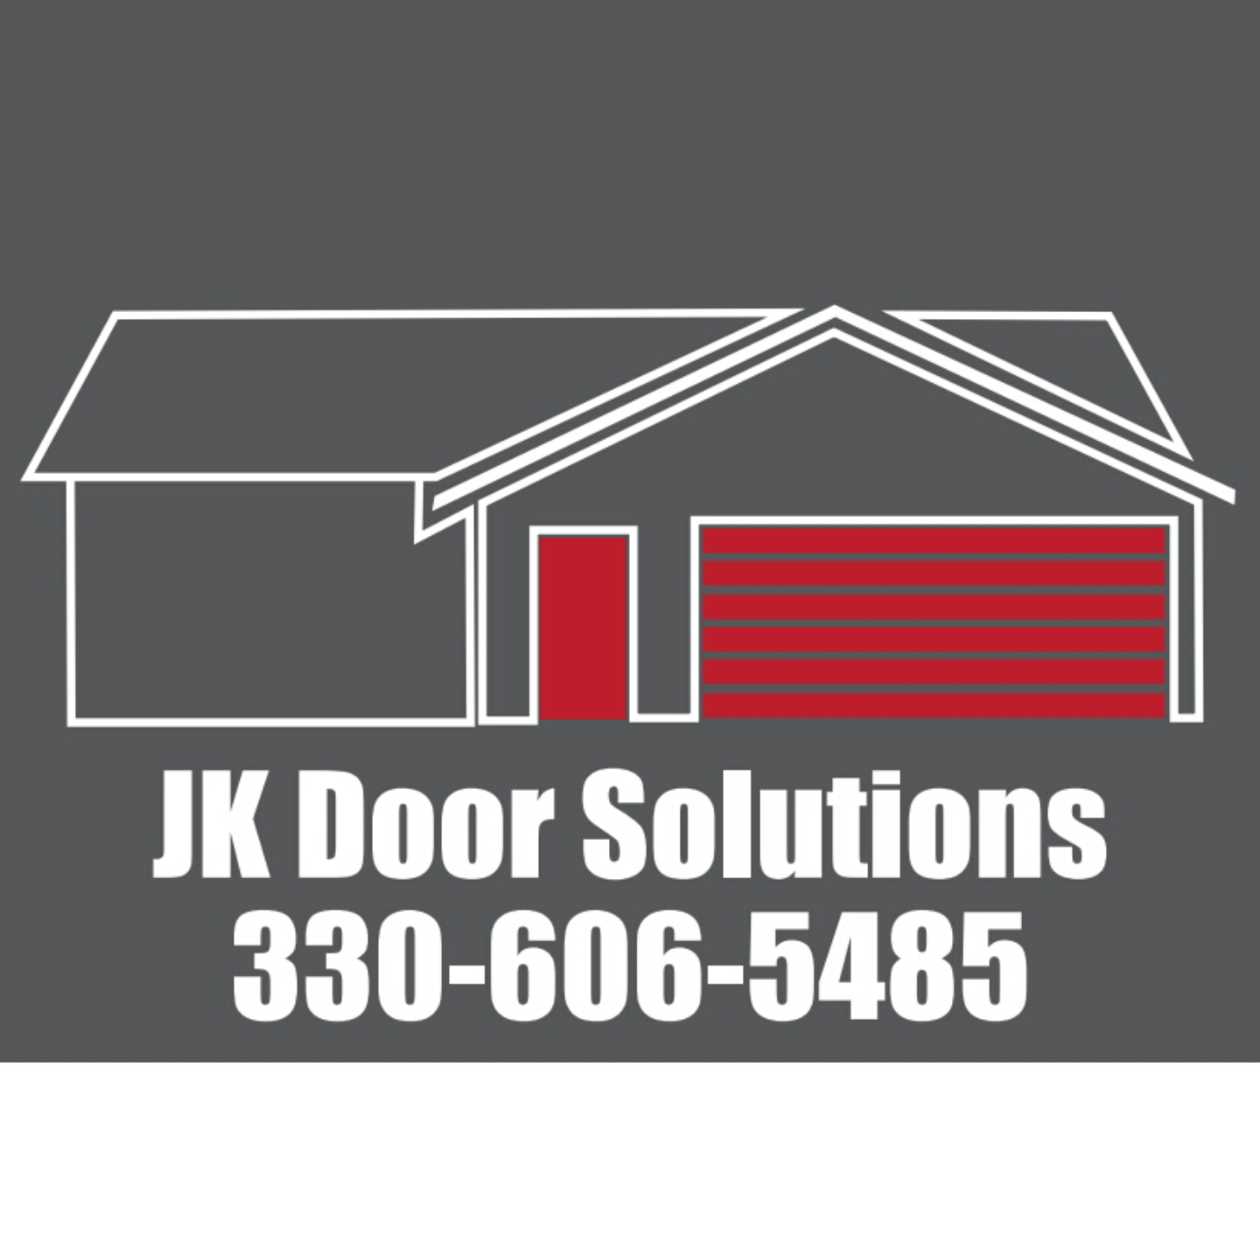 JK Door Solutions